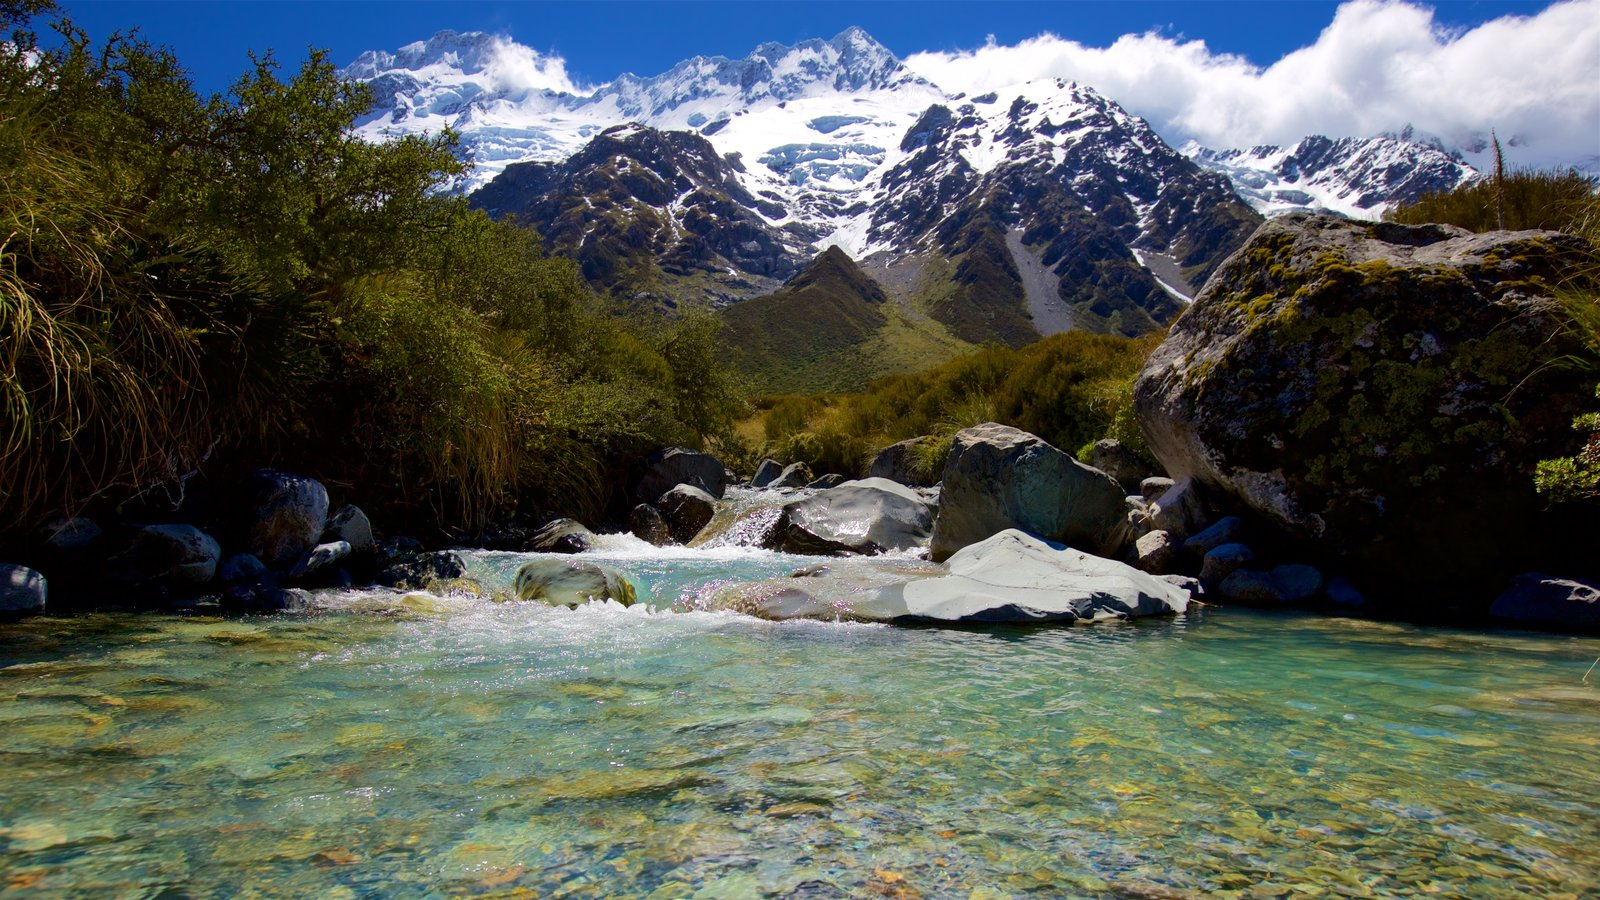 Mount Cook National Park which includes snow, a river or creek and mountains